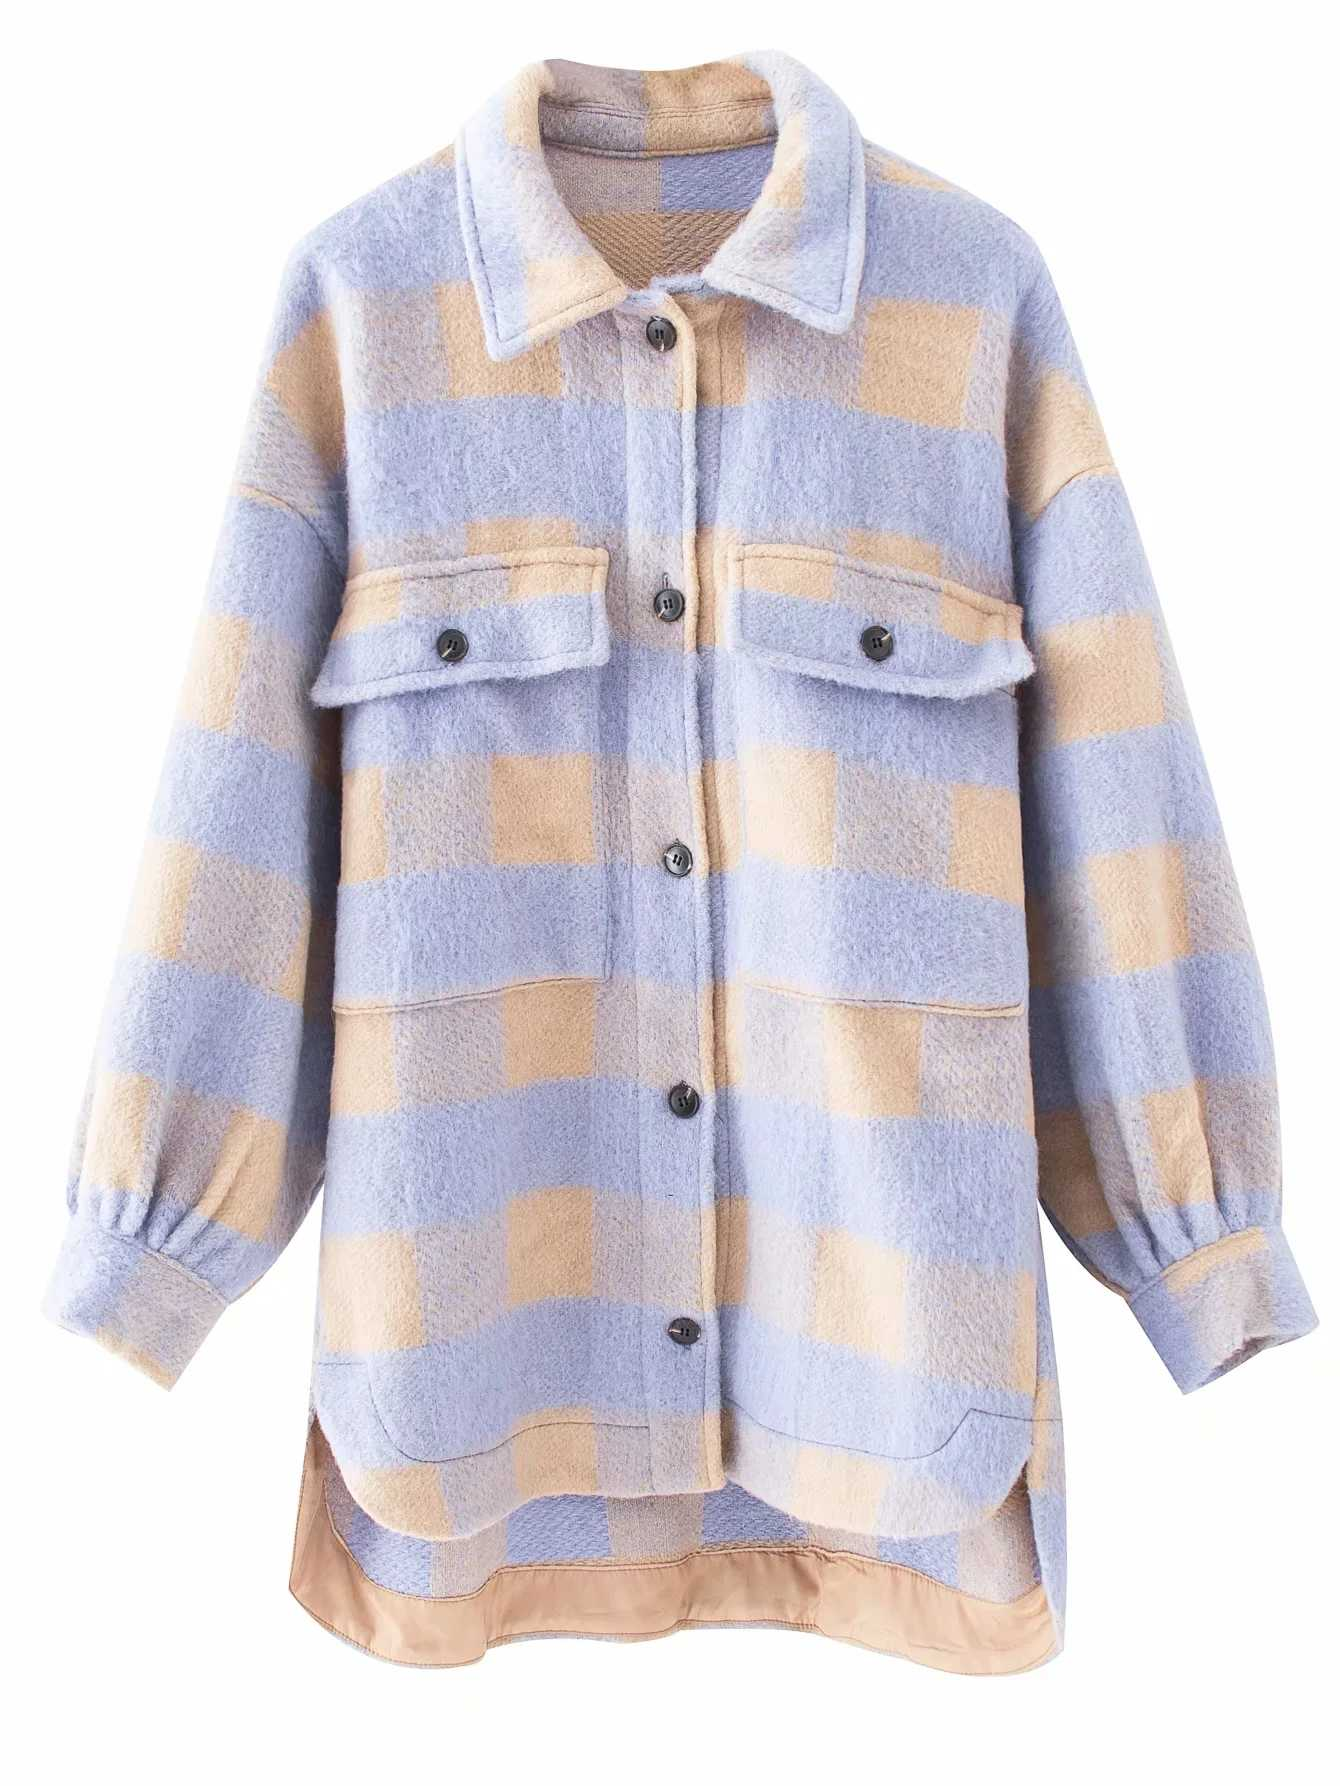 Women 2020 Fashion Overshirts Oversized Checked Woolen Jacket Coat Vintage Pocket Asymmetric Female Outerwear Chic Tops